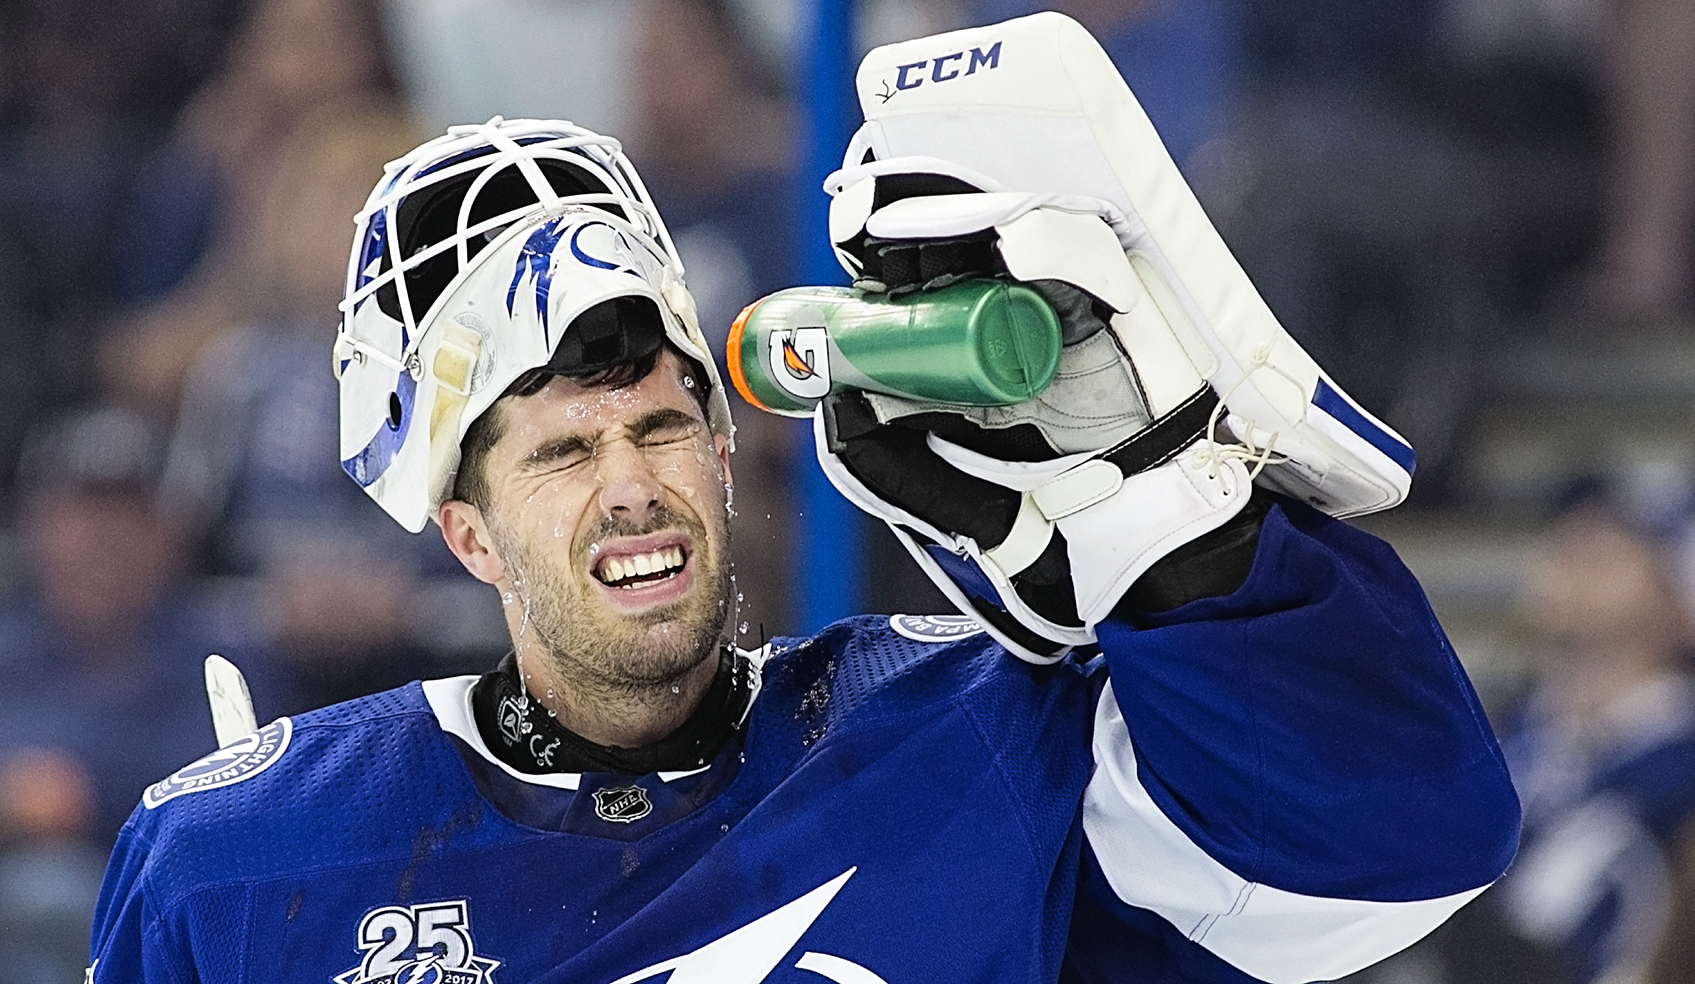 Dominique had 39 saves, but he lost in overtime./JEFFREY S. KING